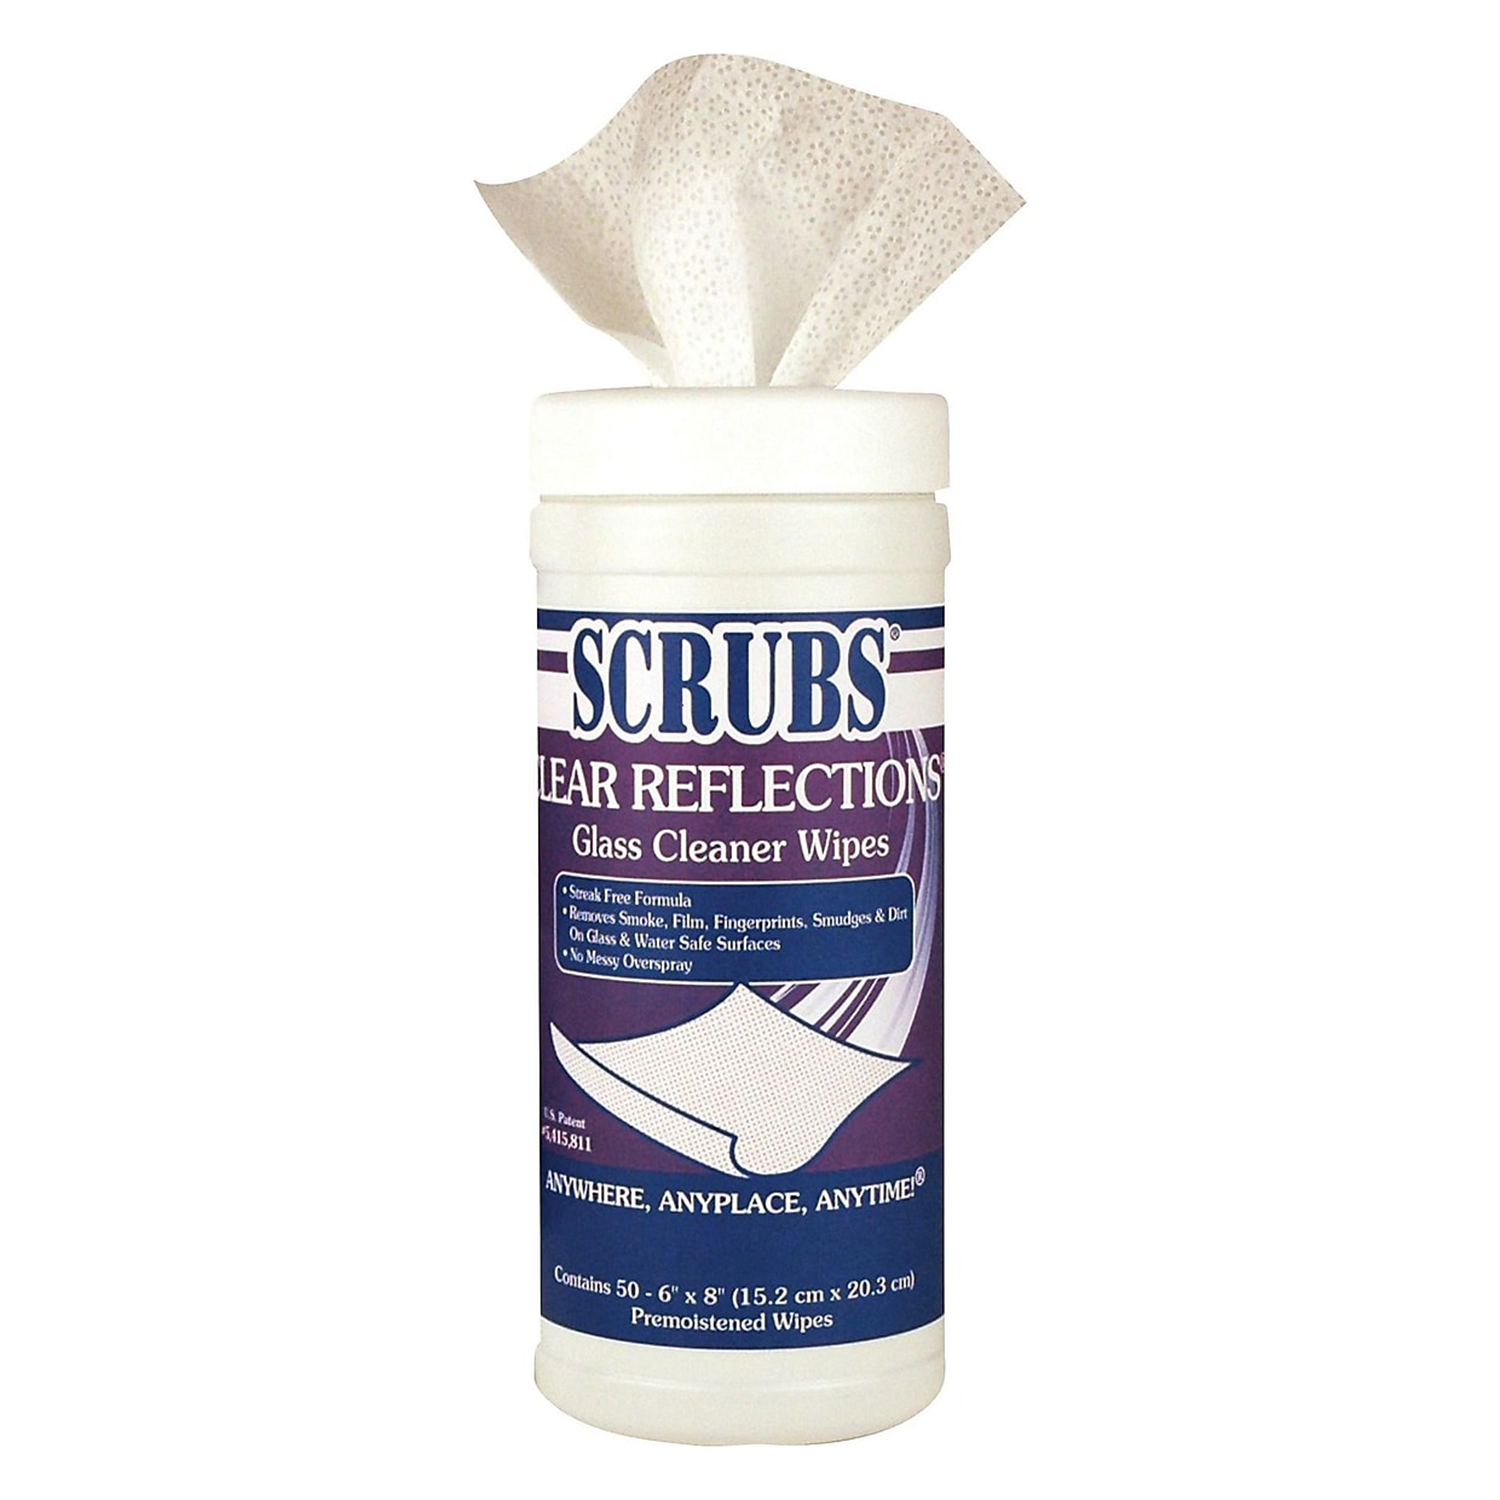 Scrubs Clear Reflections Glass Cleaning Wipes, Floral